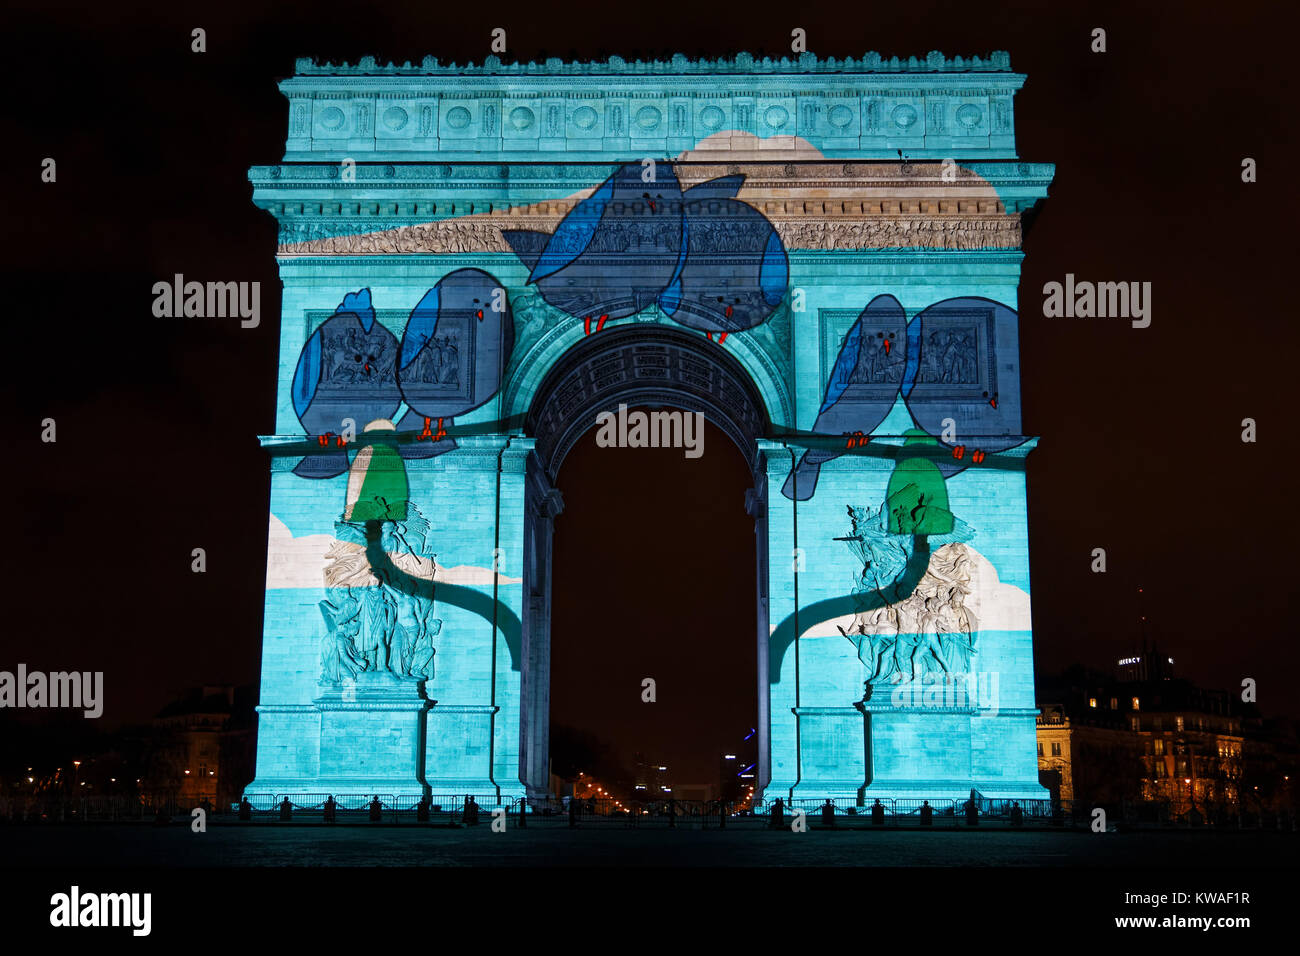 Paris, France. 31st Dec, 2017. The video show projected on the Arc de Triomphe for the new year on December 31, - Stock Image